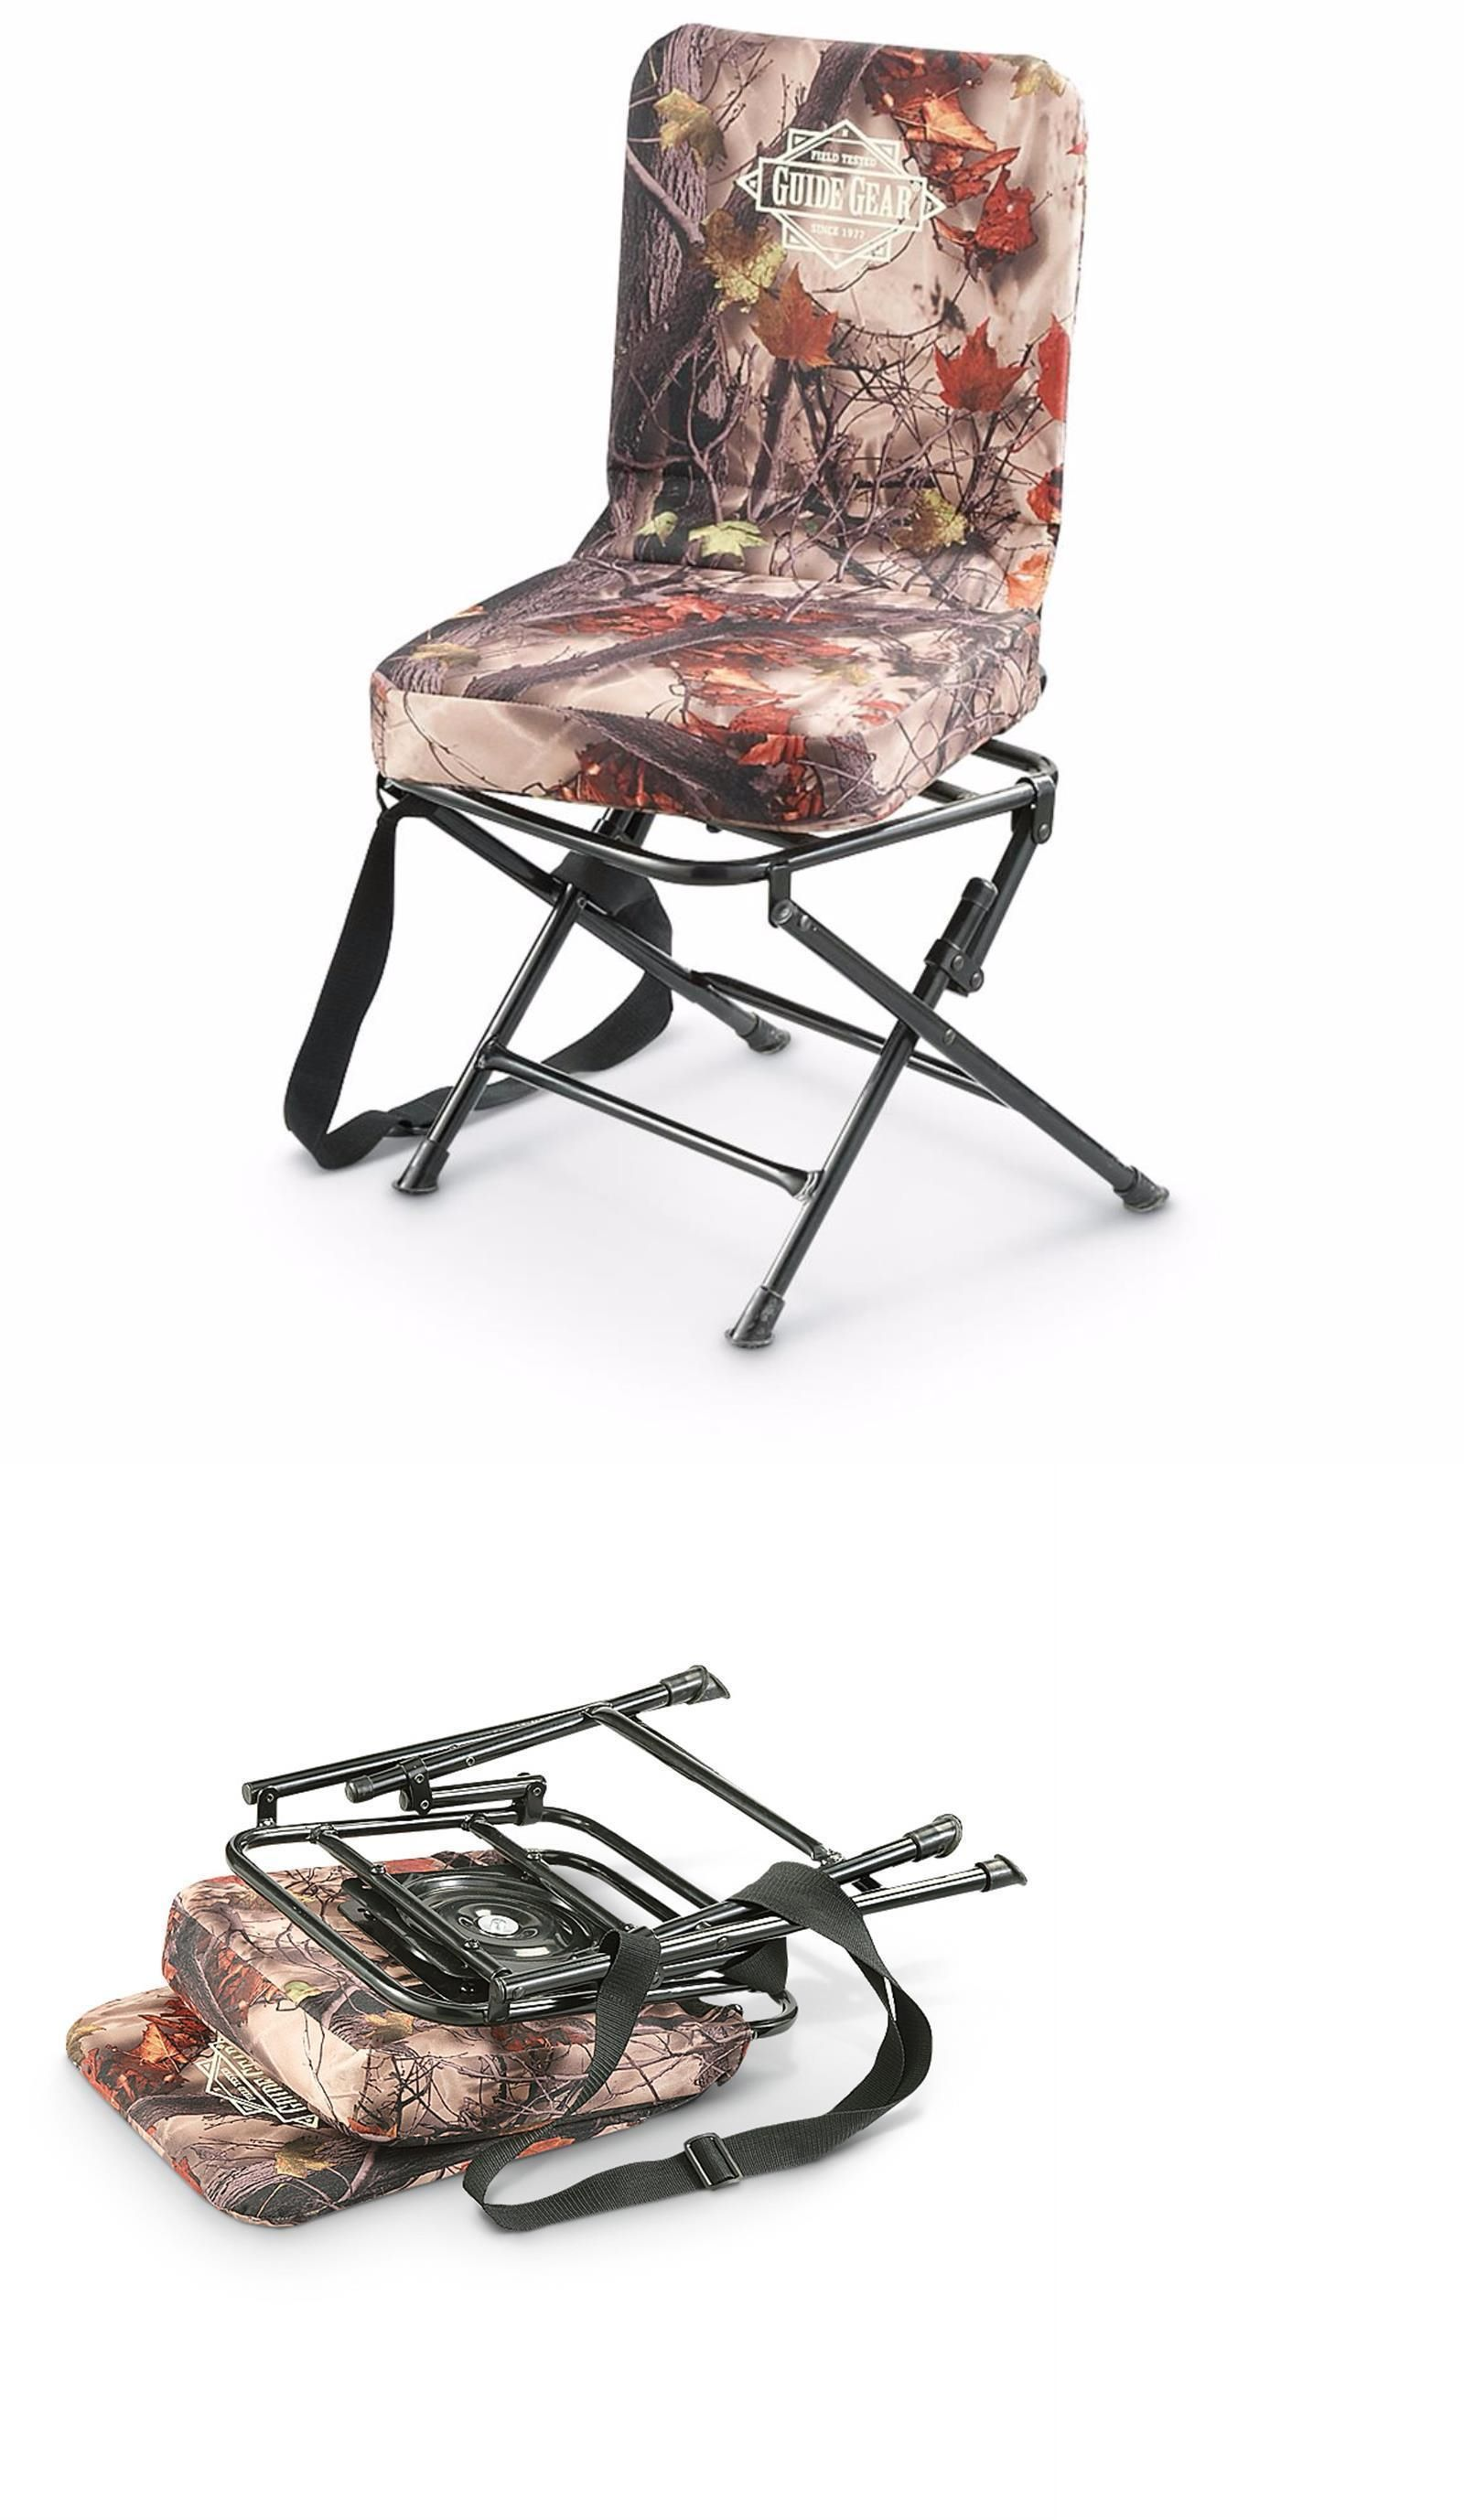 Seats and Chairs New Camo Silent Swivel Blind Hunting Chair